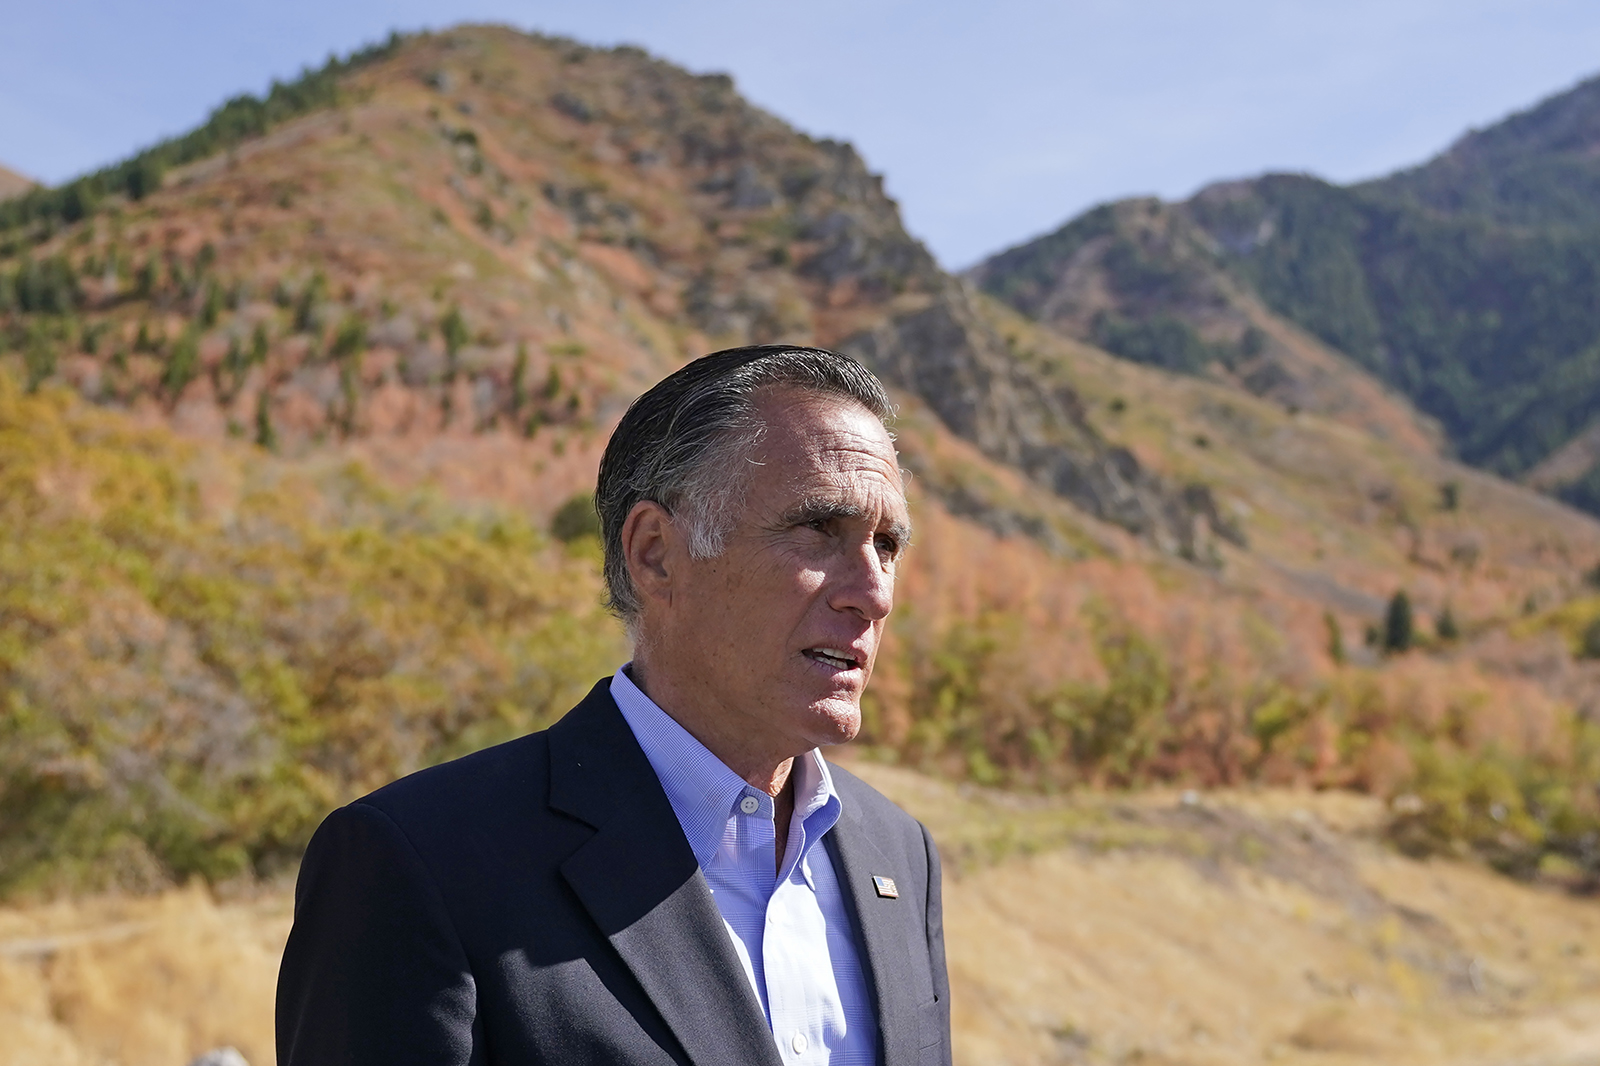 Sen. Mitt Romney, R-Utah, speaks to reporters following a news conference on Thursday, October 15, near Neffs Canyon in Salt Lake City.